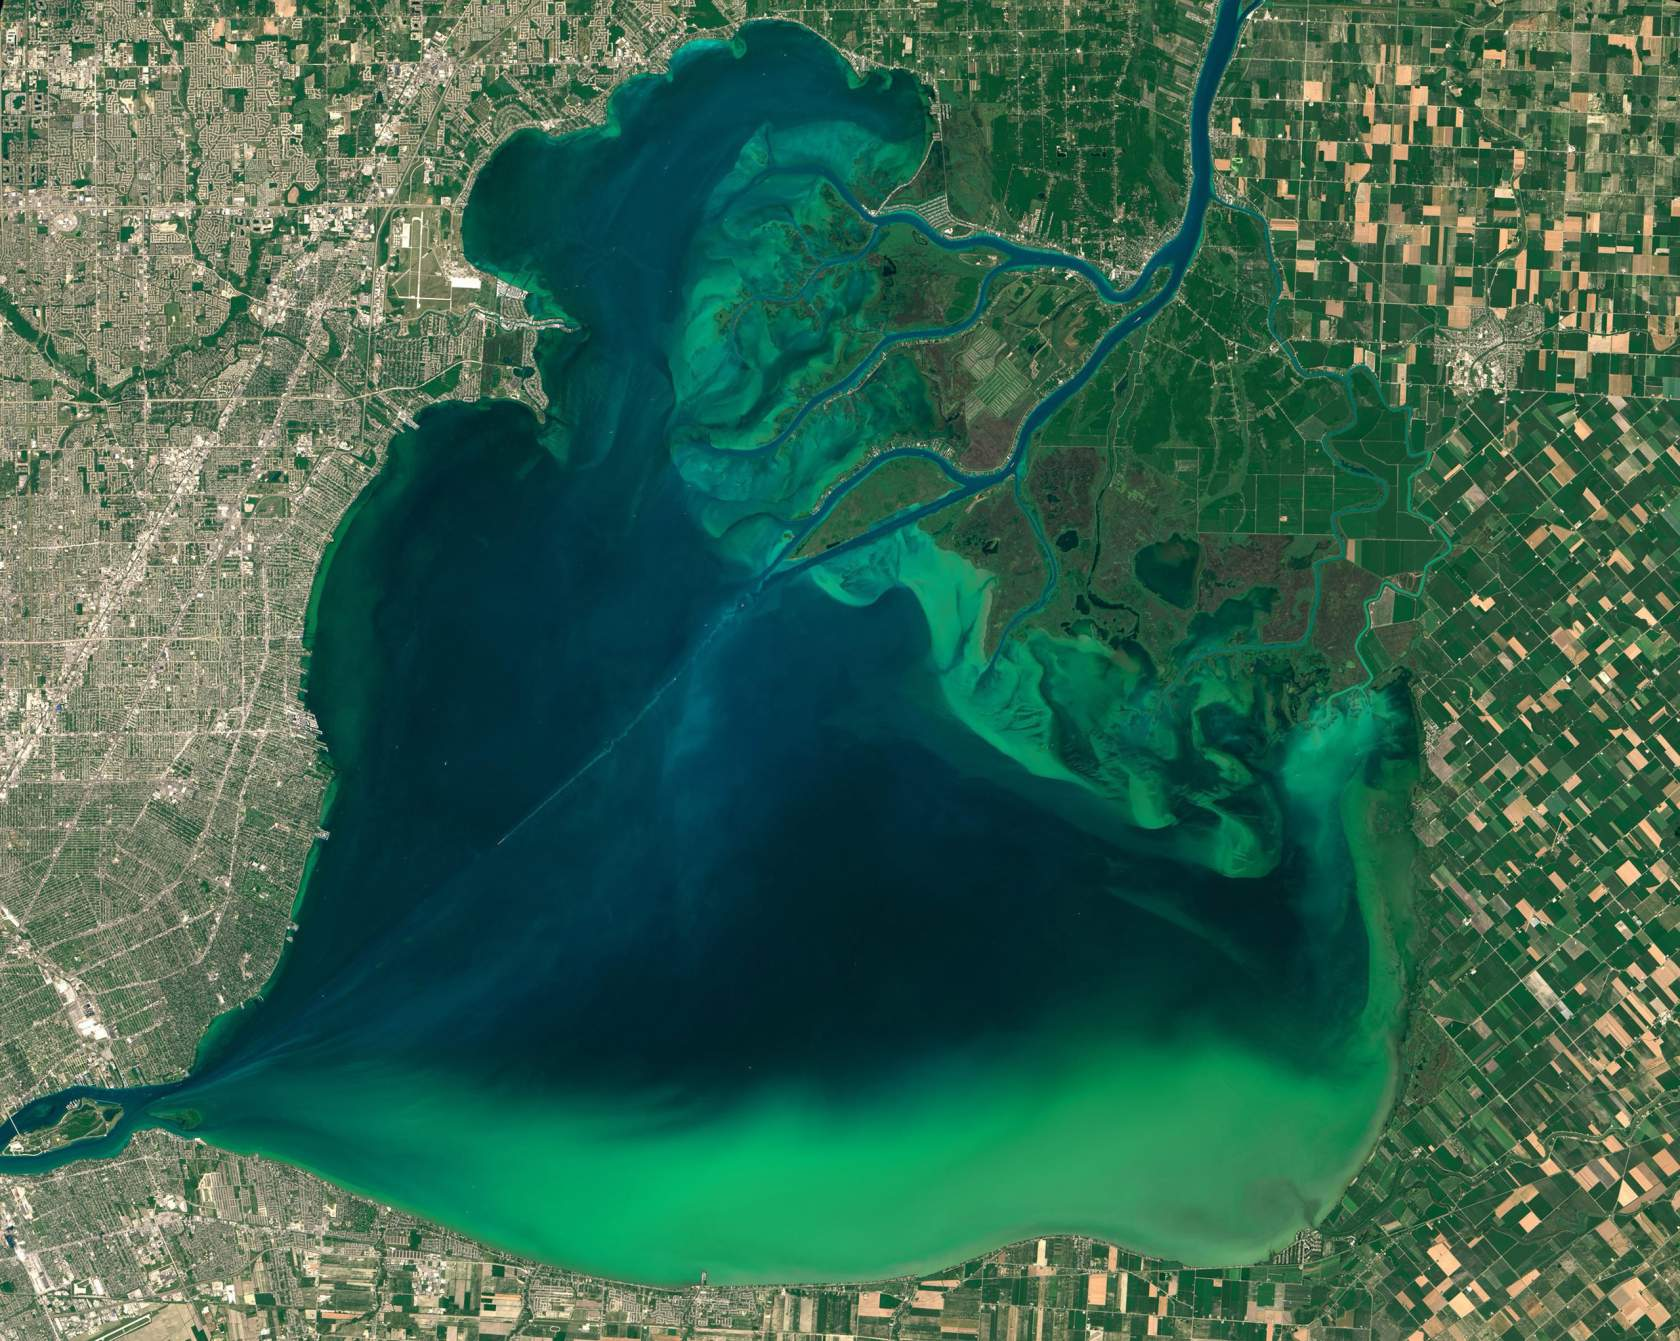 epa04871978 A handout image dated 28 July 2015 and made available by NASA 04 August 2015 showing an image captured by Operational Land Imager (OLI) on the Landsat 8 satellite of algal blooms around the Great Lakes, visible as swirls of green in this image of Lake St. Clair and in western Lake Erie. Earlier in July, NOAA scientists predicted that the 2015 season for harmful algal blooms would be severe in western Lake Erie. They suggest that algae growth in western Lake Erie could rival the blooms of 2011. Algae in this basin thrive when there is an abundance of nutrients (many from agricultural runoff) and sunlight, as well as warm water temperatures. The season runs through summer and peaks in September.  EPA/NASA / Goddard's MODIS Rapid Response Team / HANDOUT  HANDOUT EDITORIAL USE ONLY